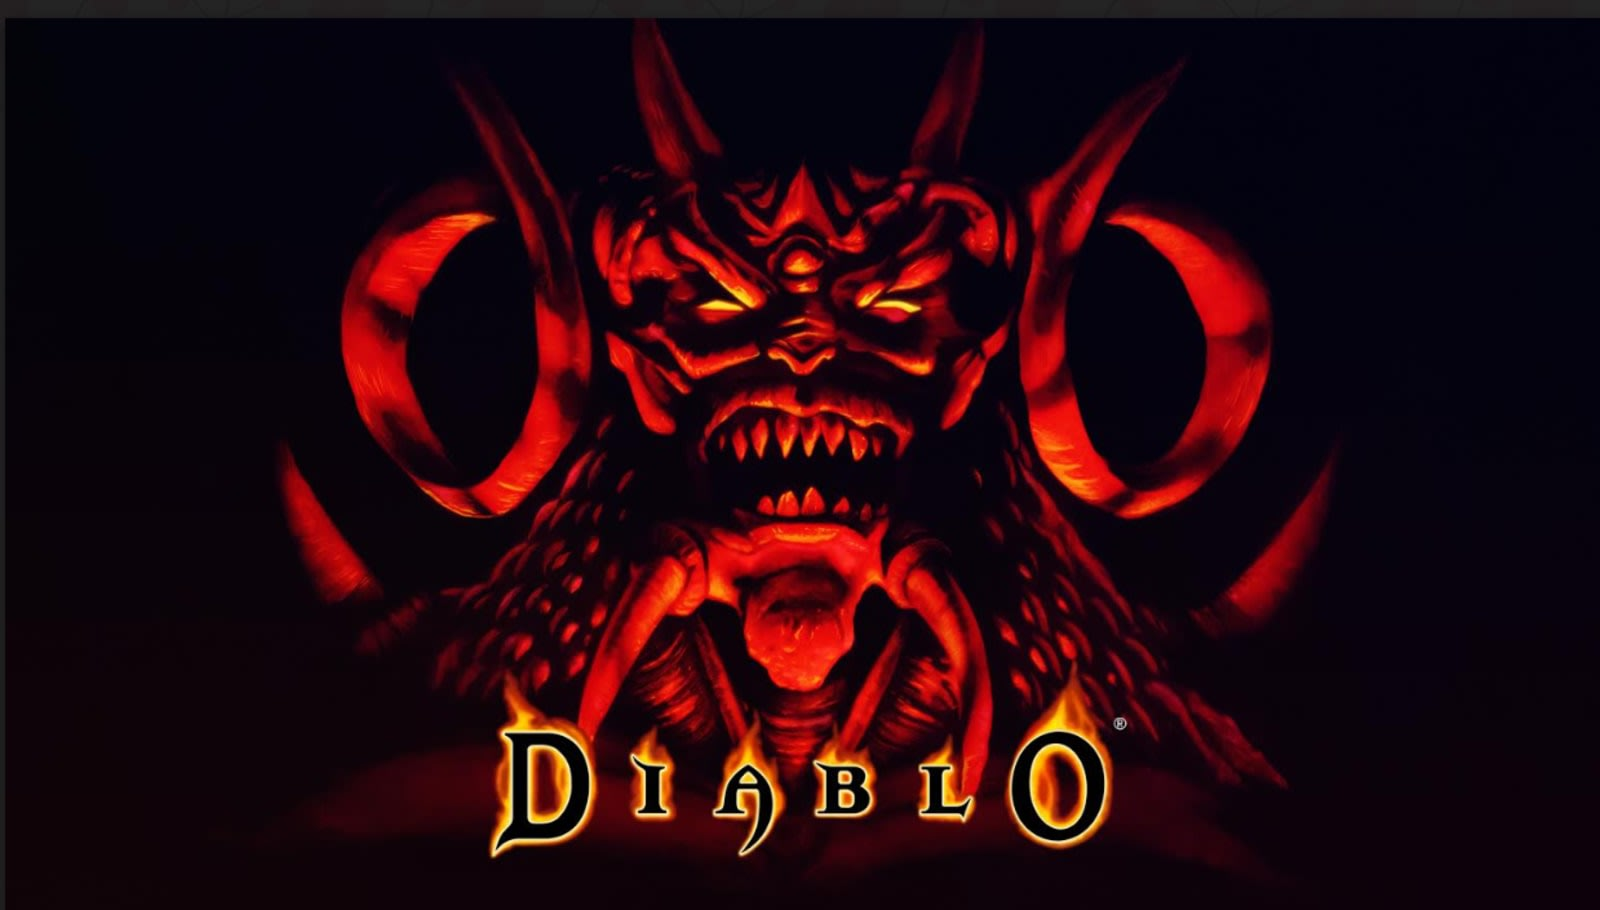 The original 'Diablo' is now available on GOG com